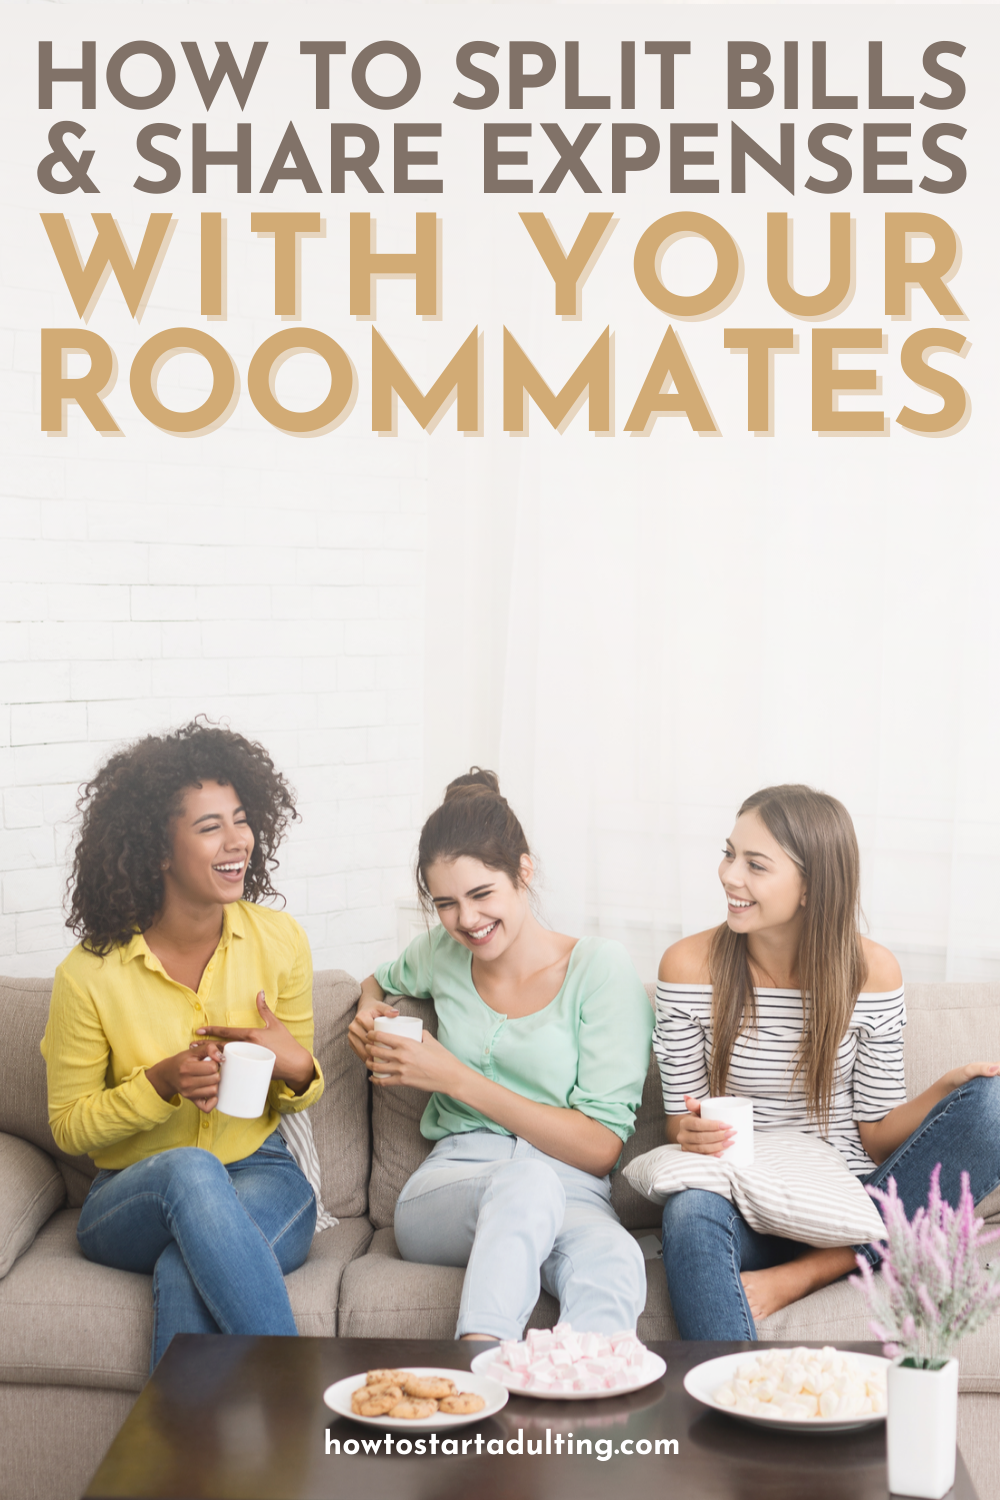 How To Split Bills And Share Expenses With Your Roommates